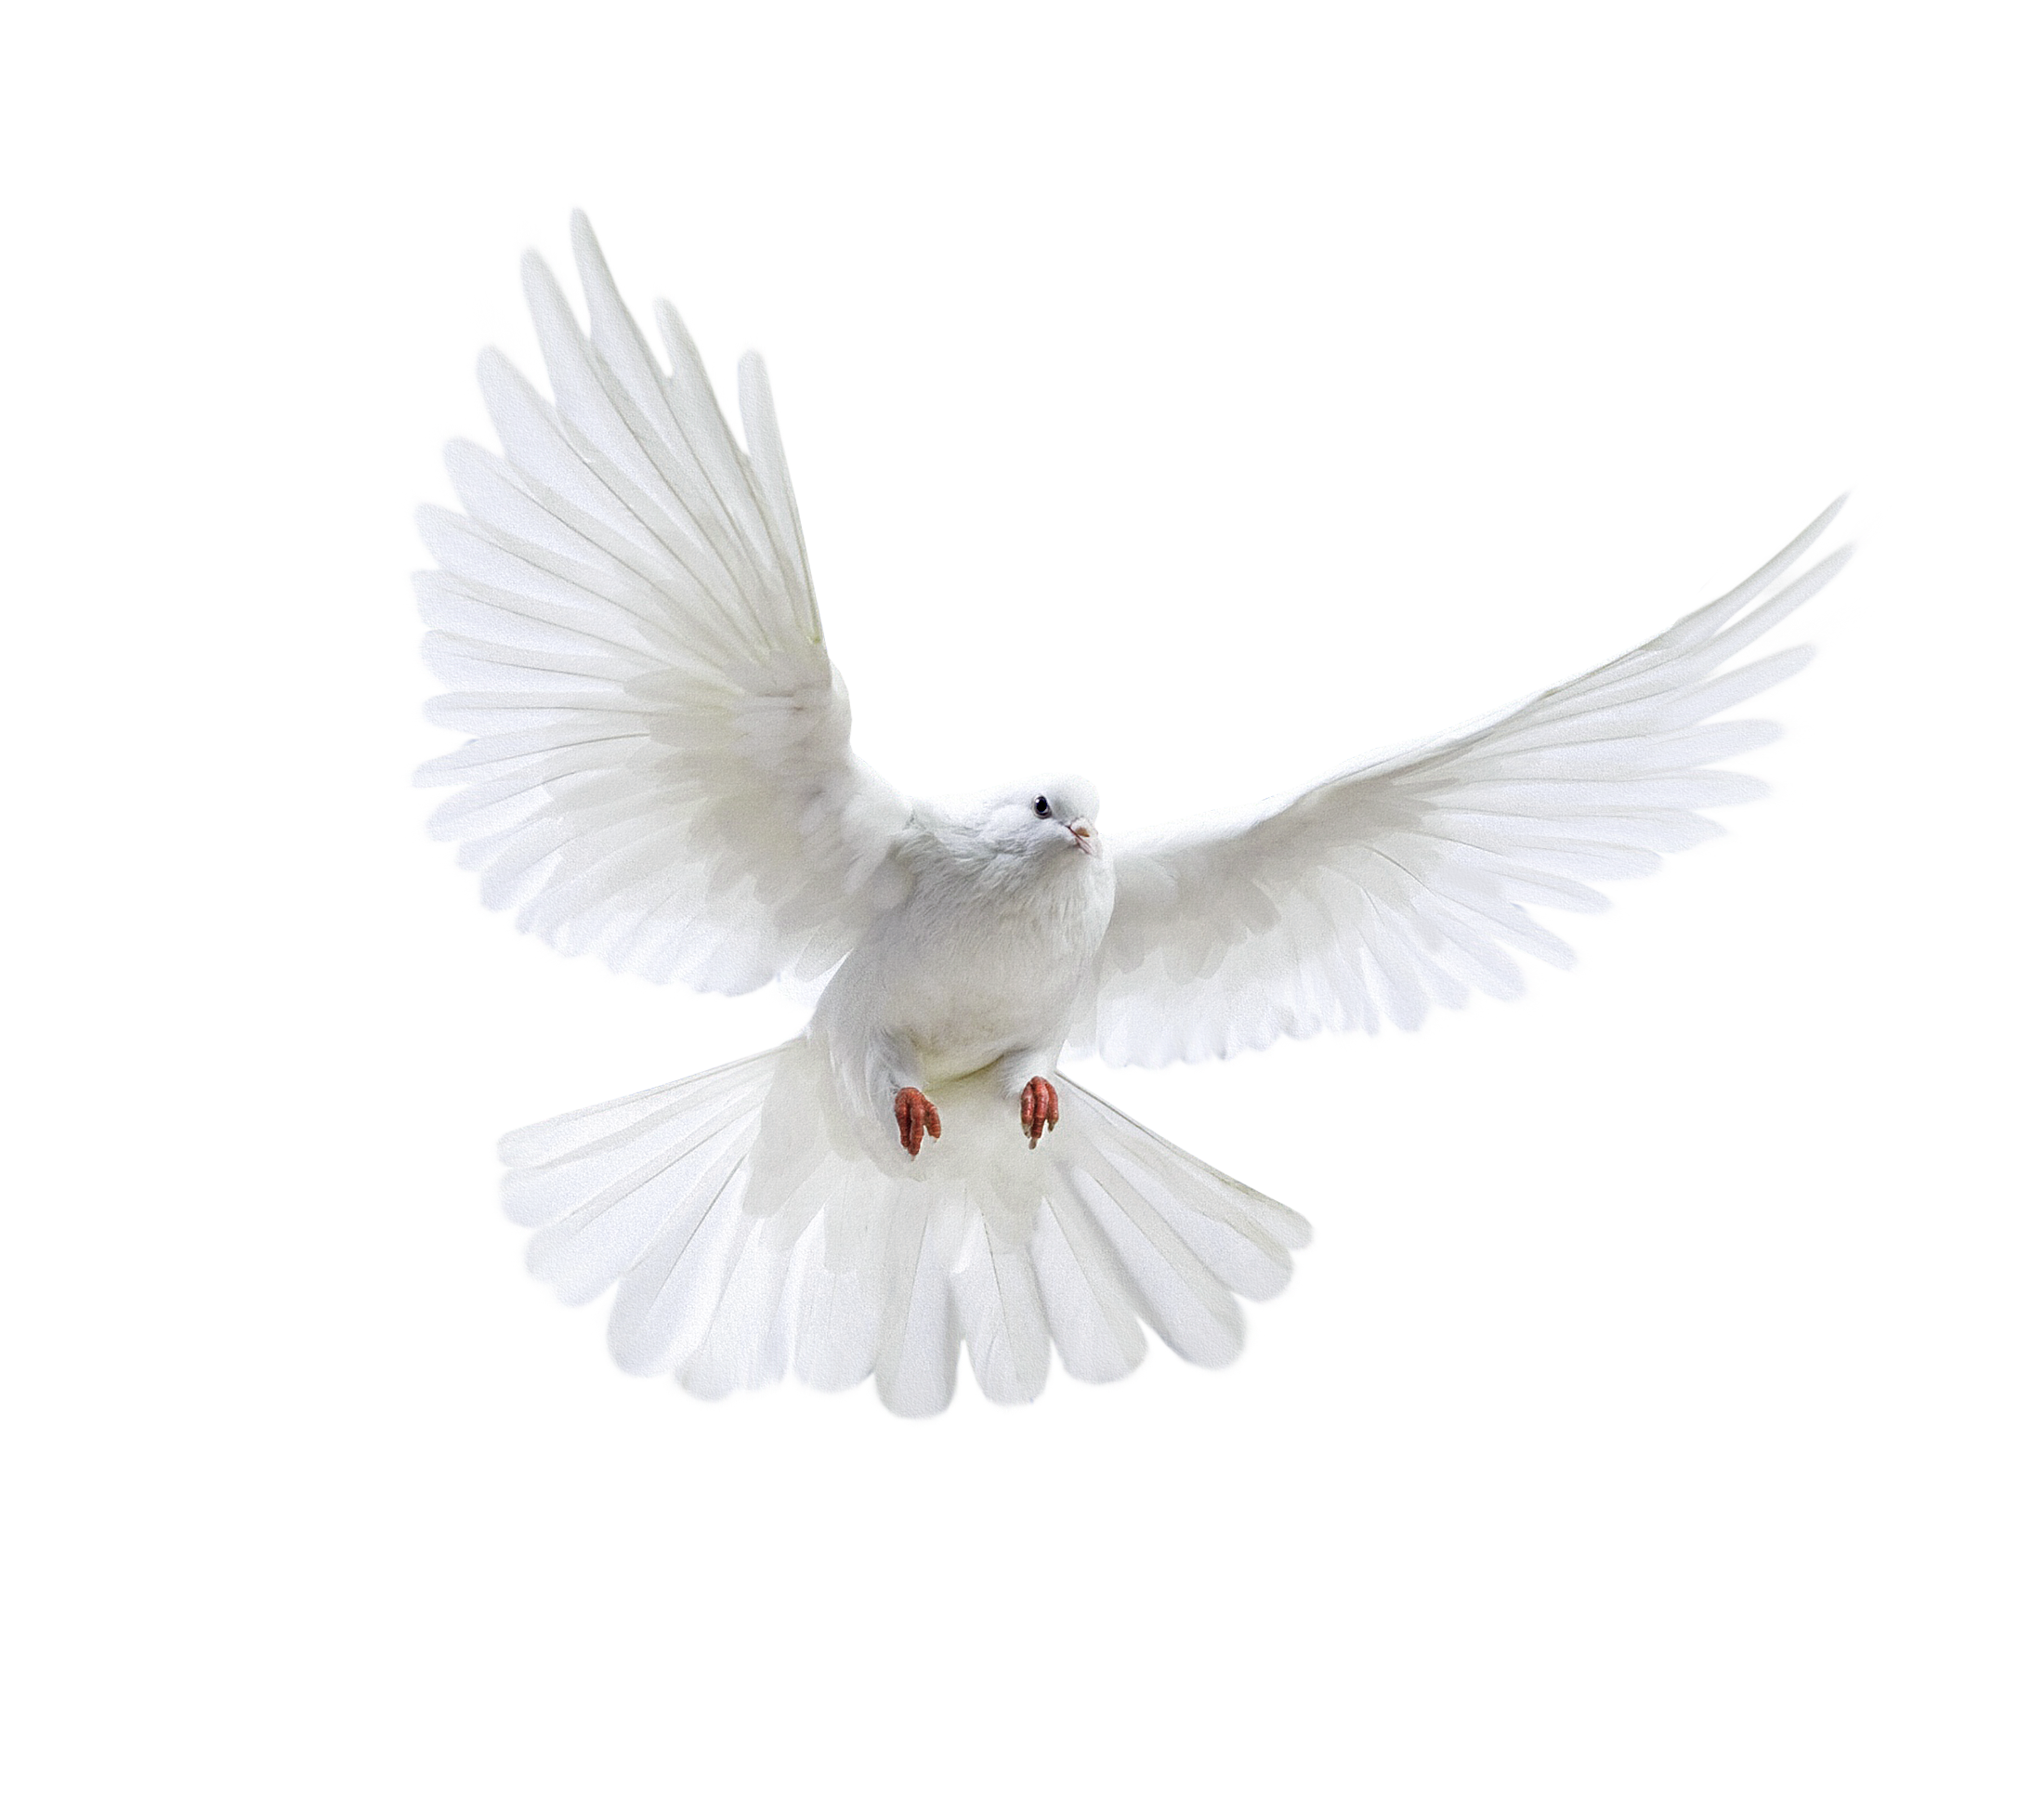 White clipart pigeon flying Image free png pigeon images